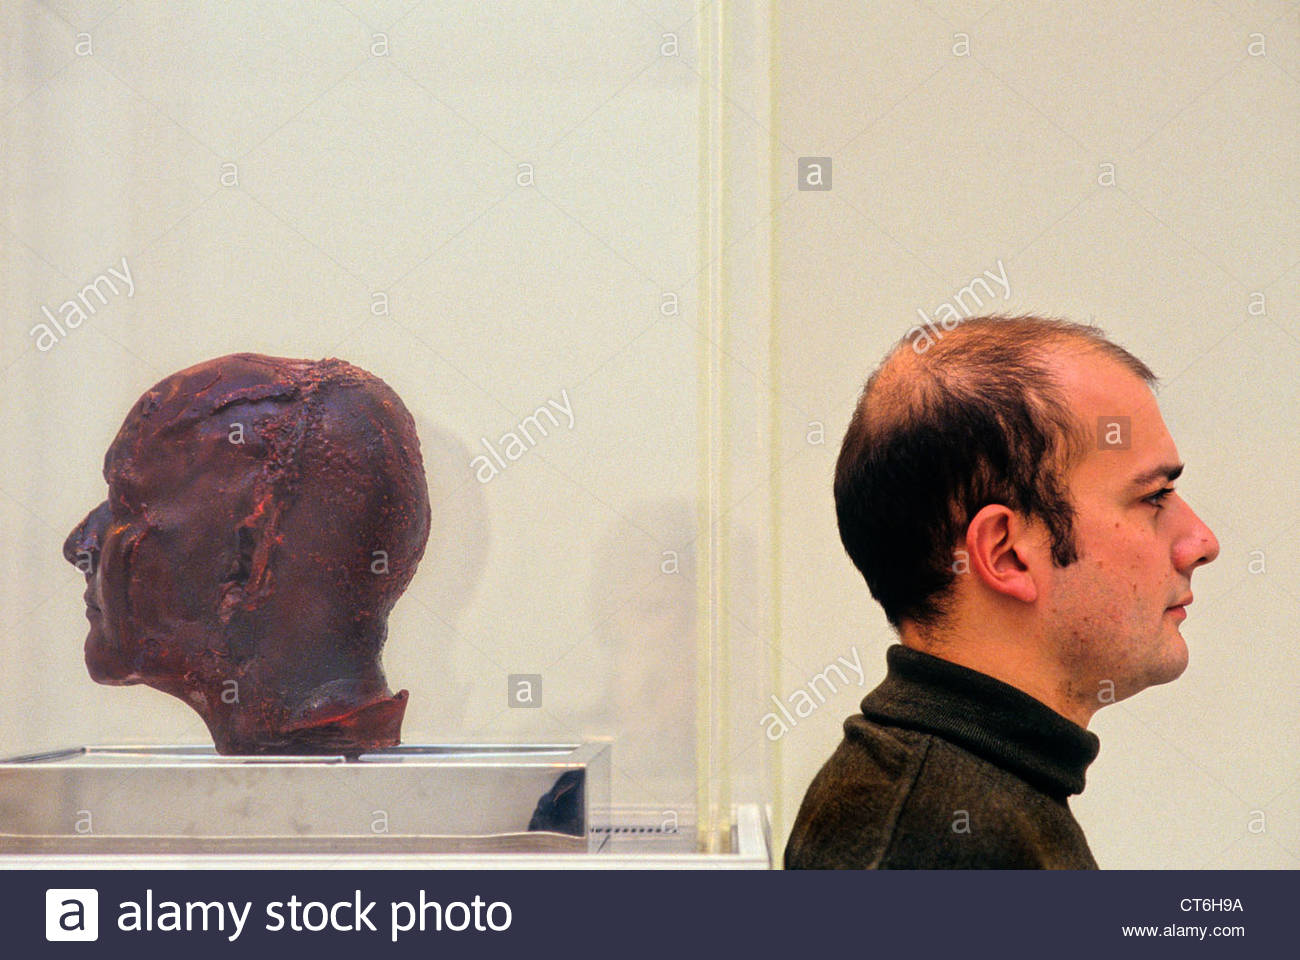 Artist Marc Quinn photographed in 1991 with his 'Blood Head' self-portrait sculpture - Stock Image